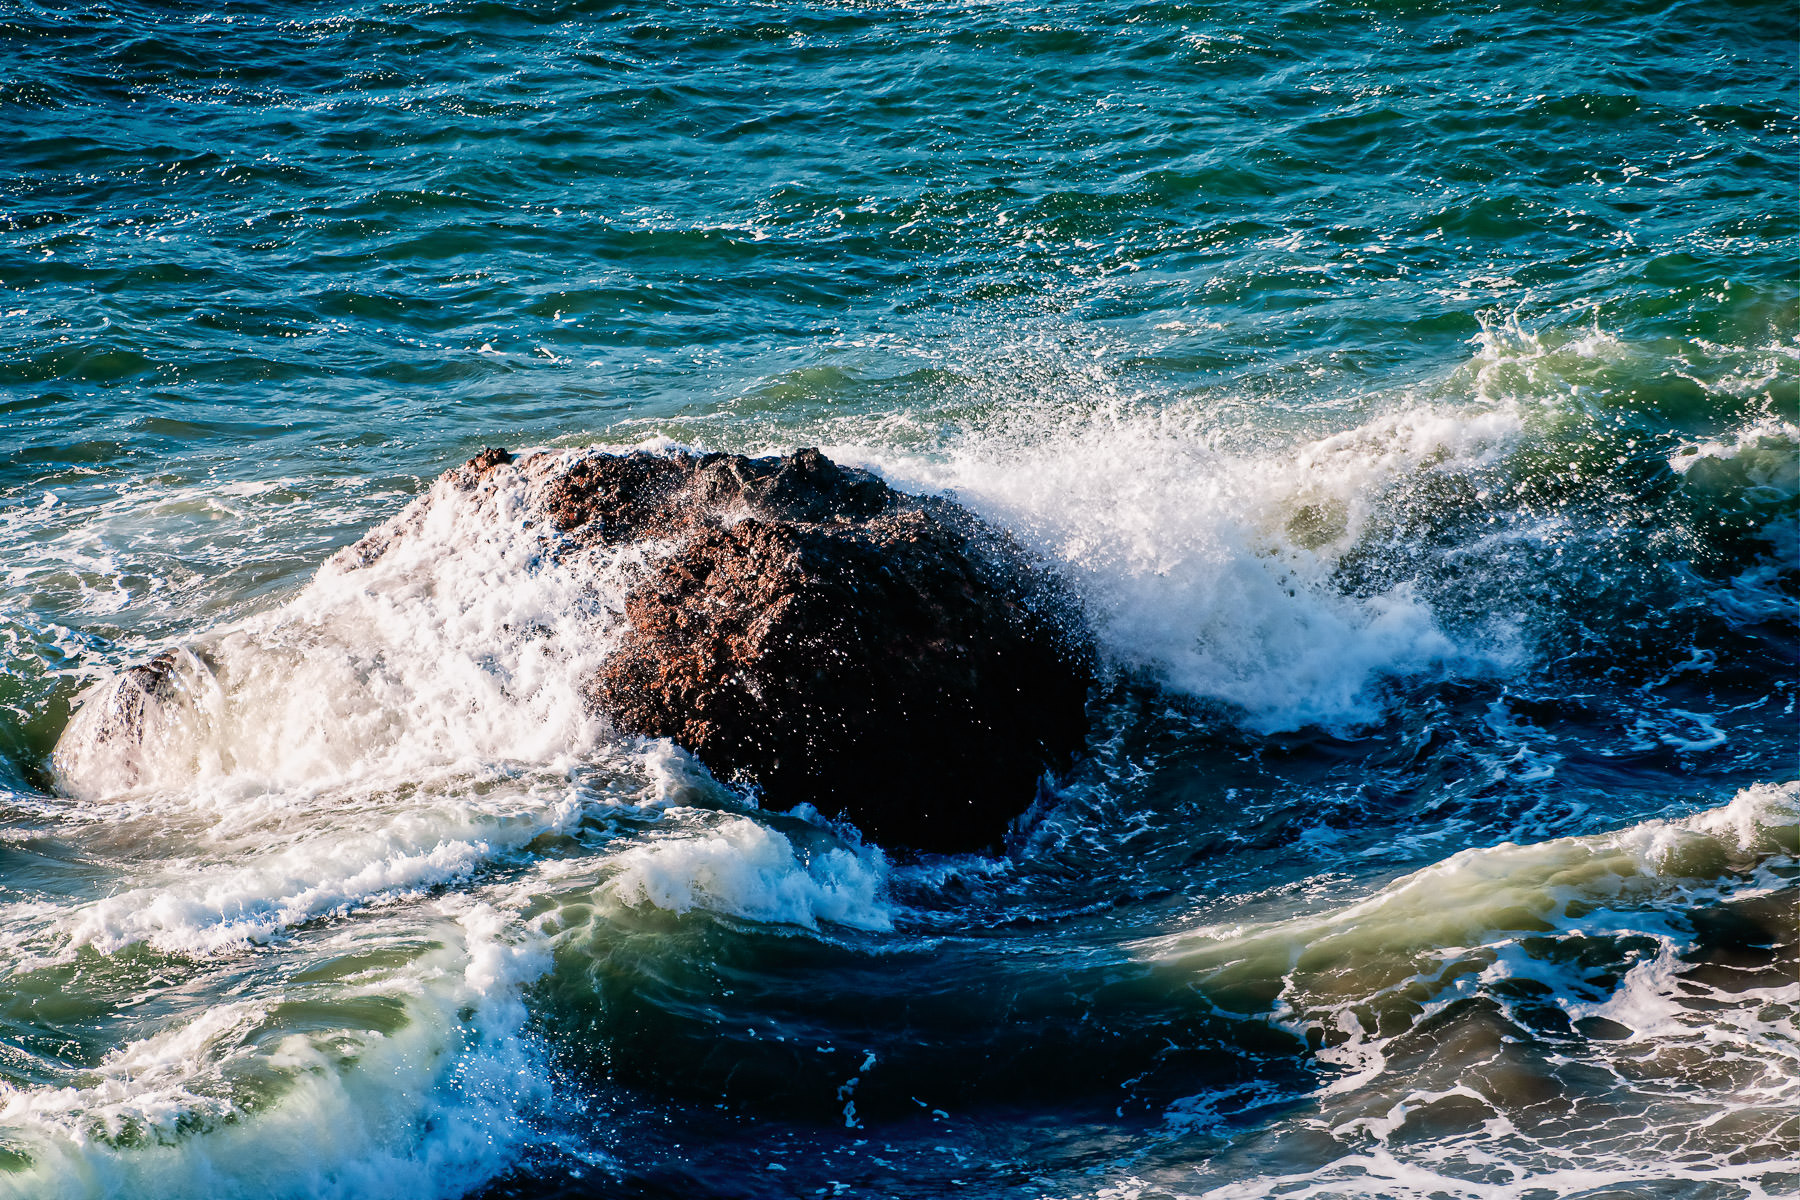 Waves crash over a rock along the Pacific Ocean shoreline at Lands End, San Francisco.